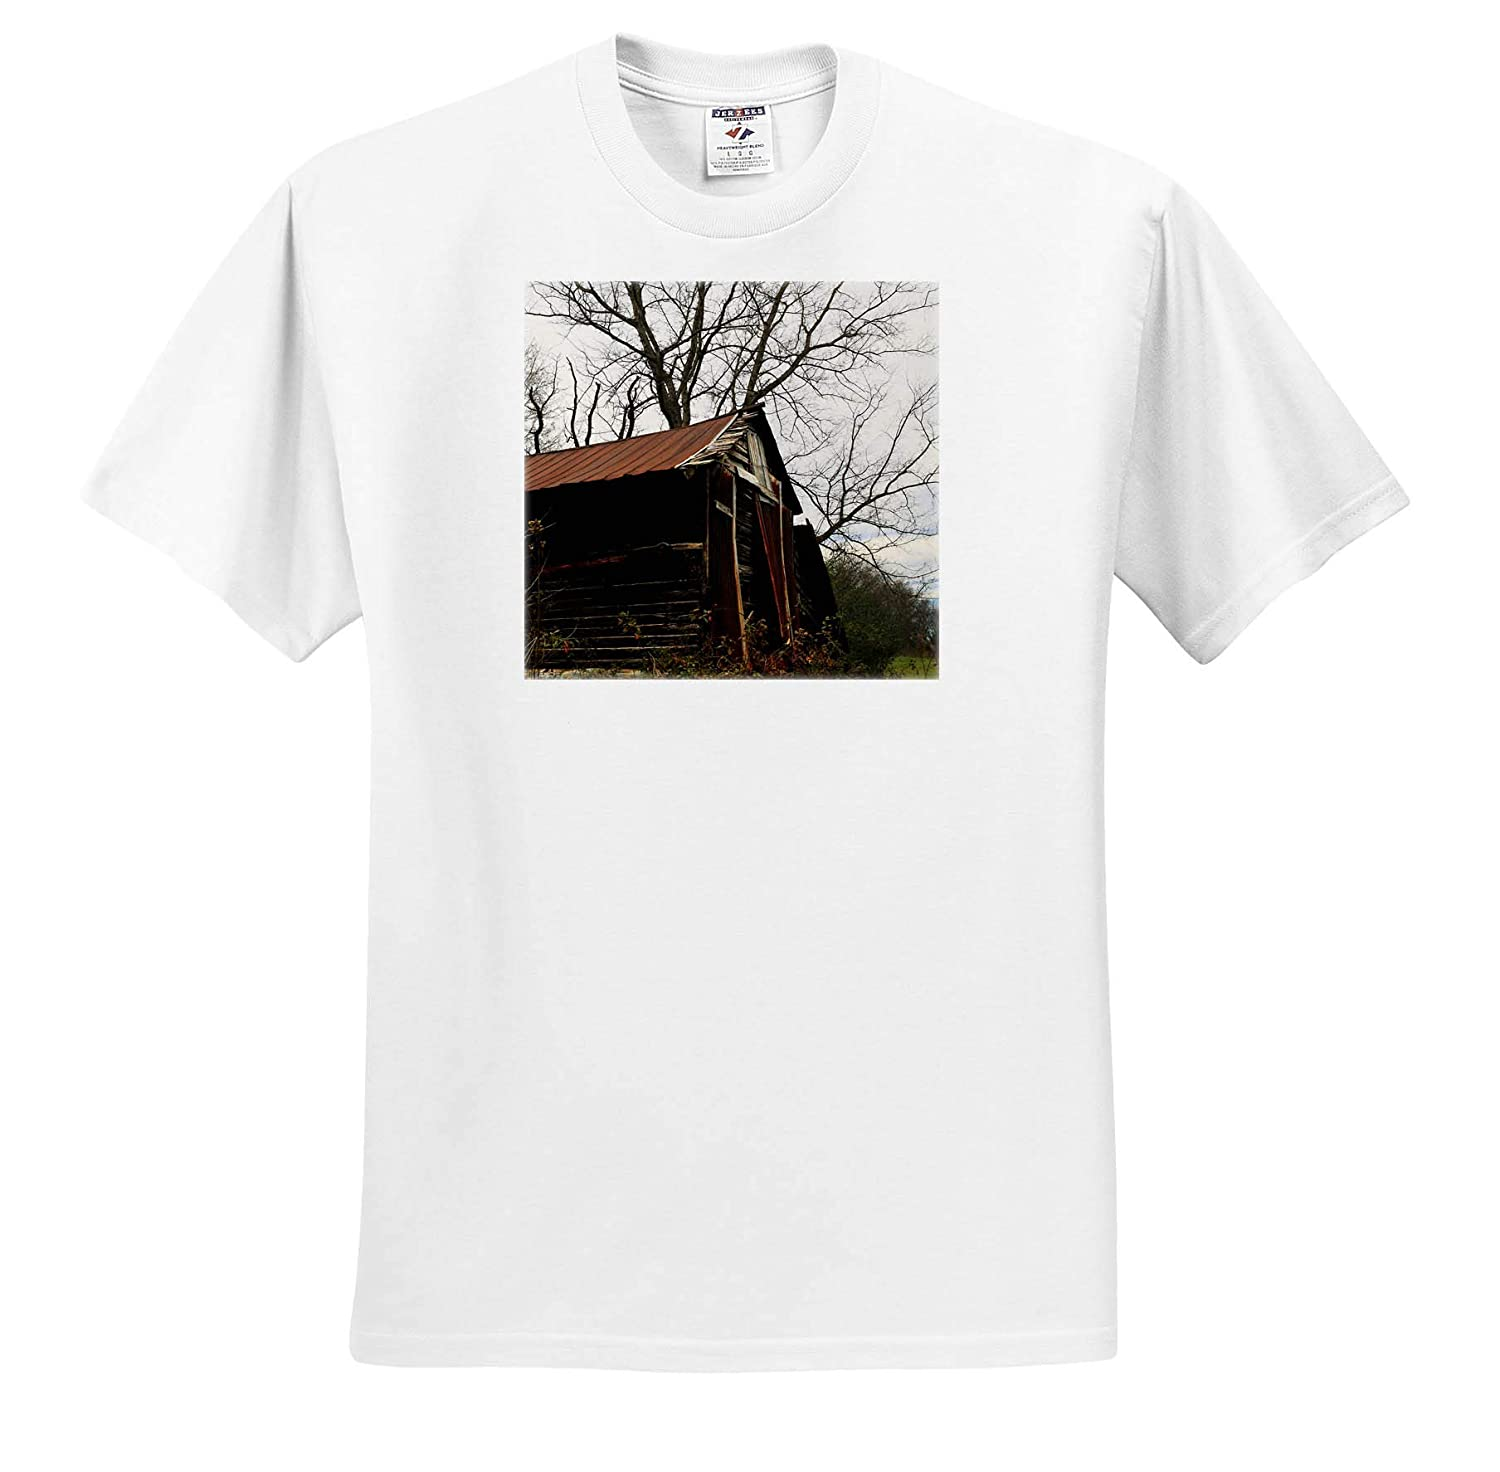 ts/_309911 3dRose Stamp City Architecture - Adult T-Shirt XL Photograph of a Vacant barn on a Farm in South Carolina